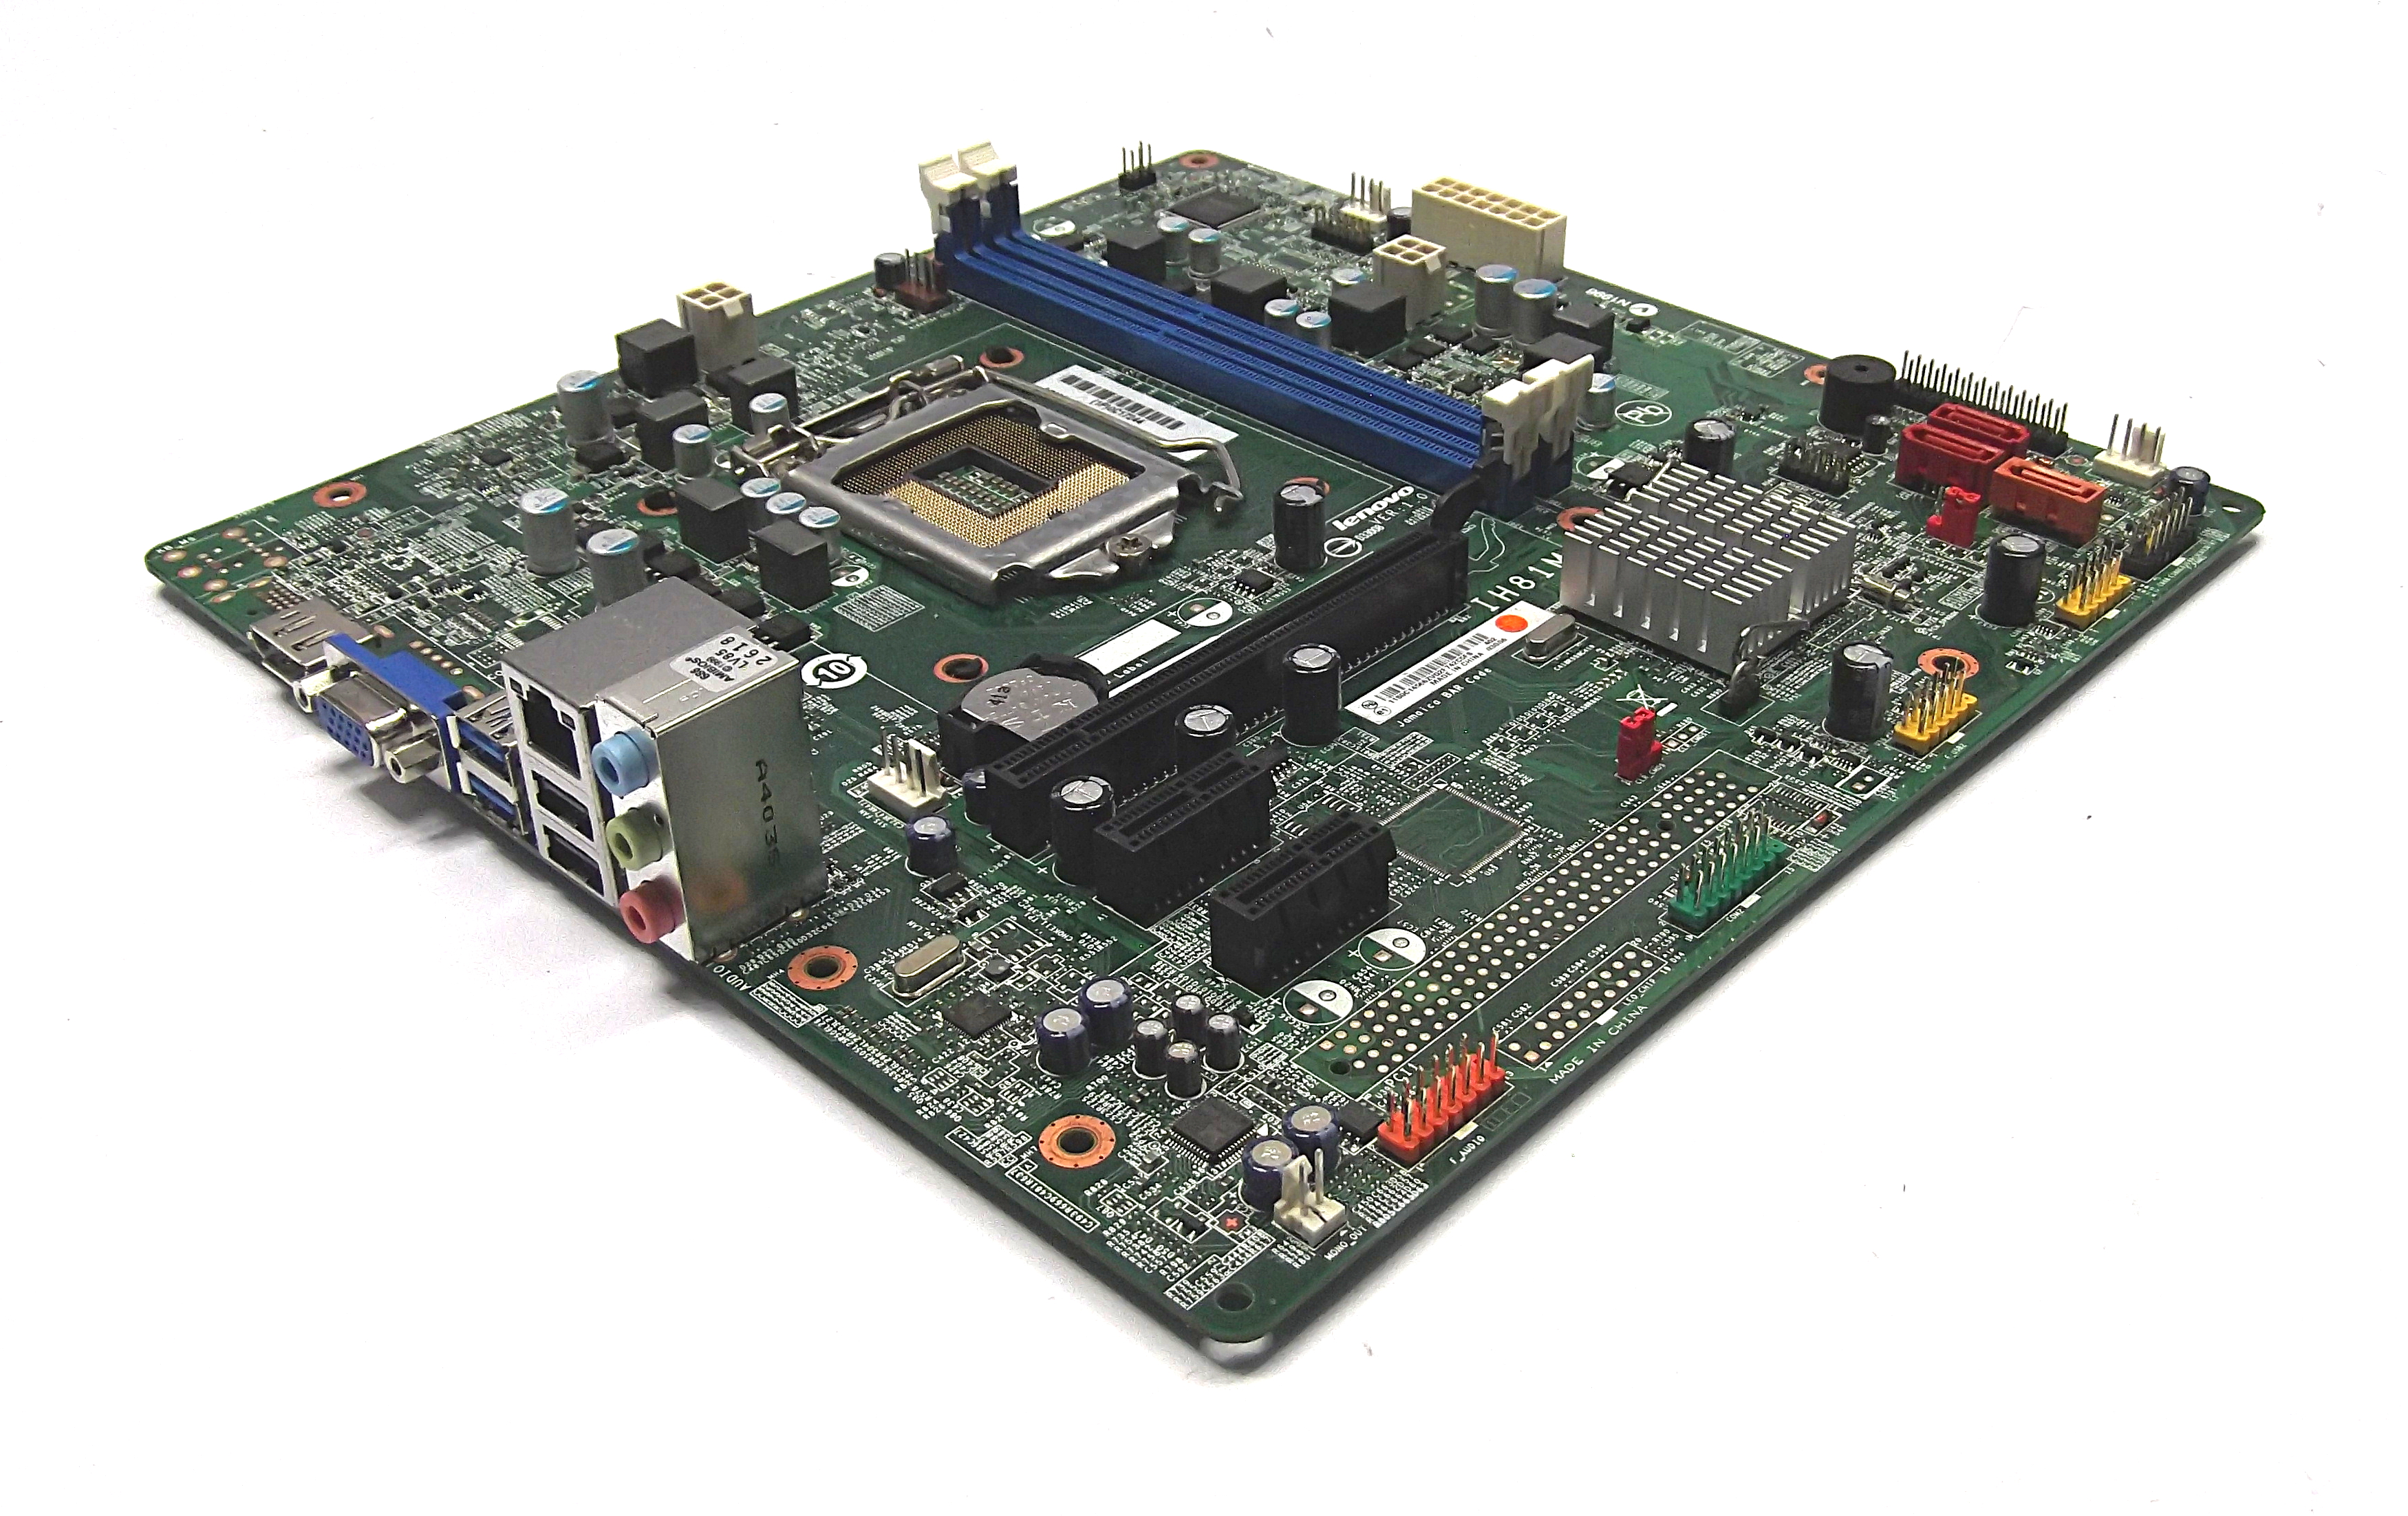 Lenovo 03T7161 Socket LGA1150 IH81M VER:1.0 Mainboard for ThinkCentre E73 SFF PC